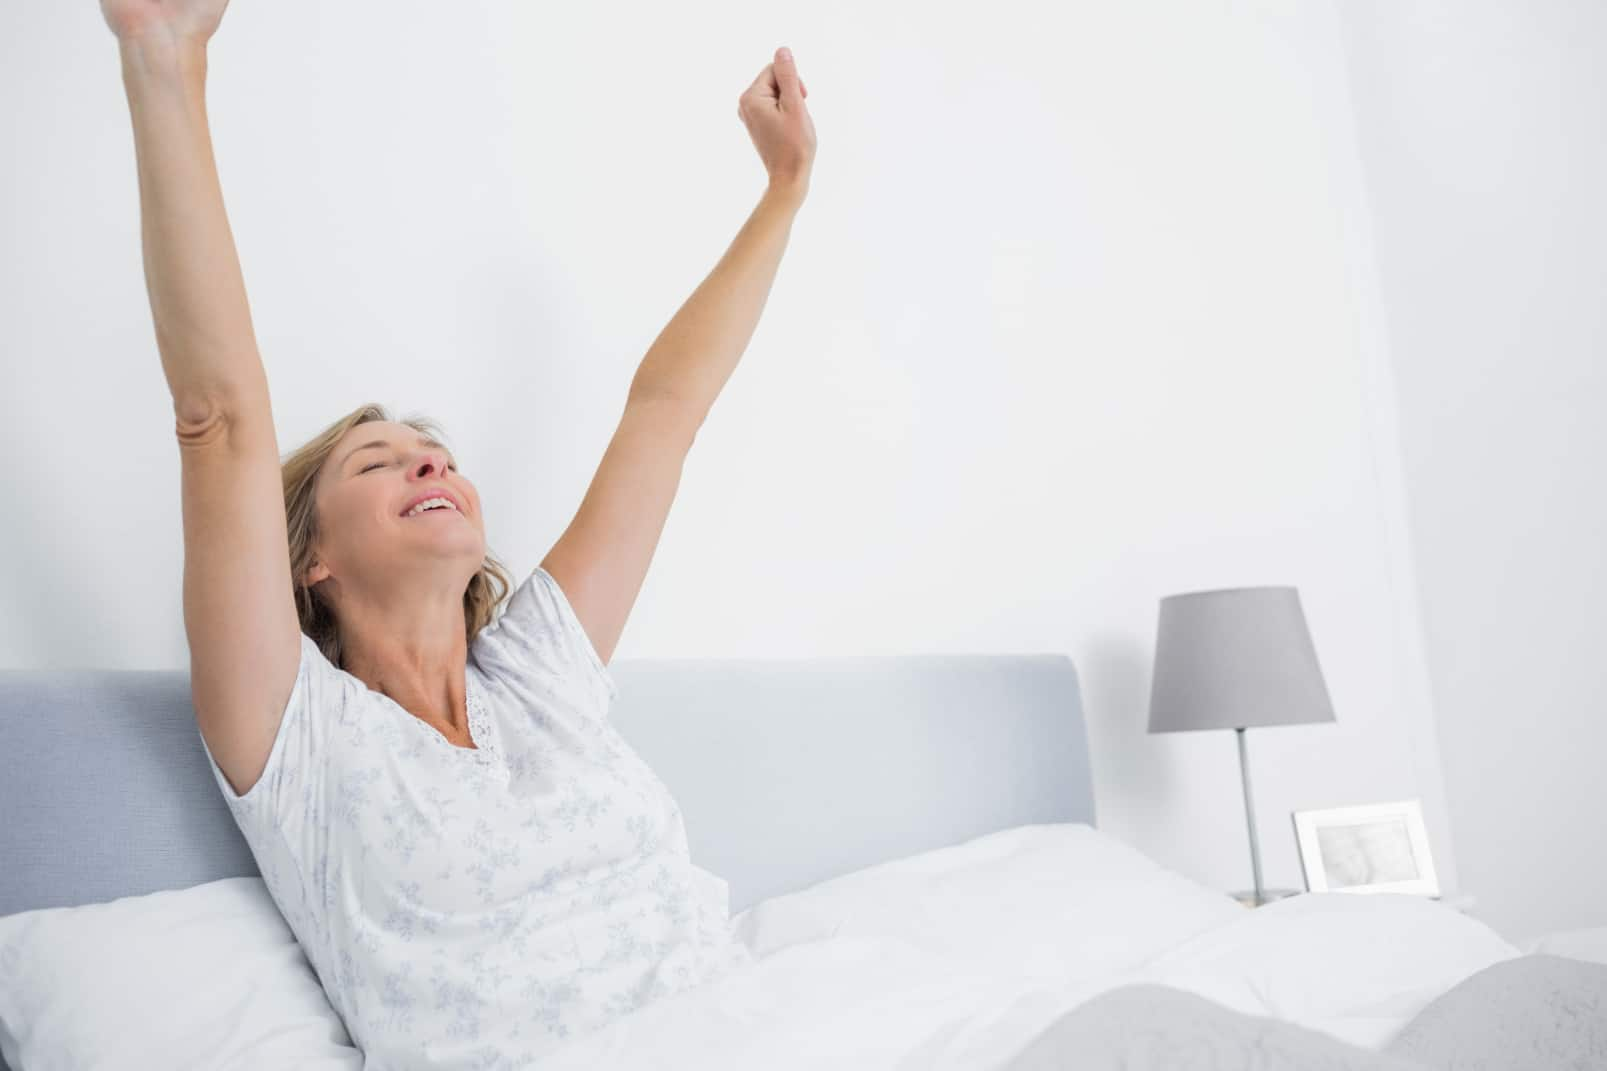 Well rested blonde woman stretching in bed and smiling in bedroom at home